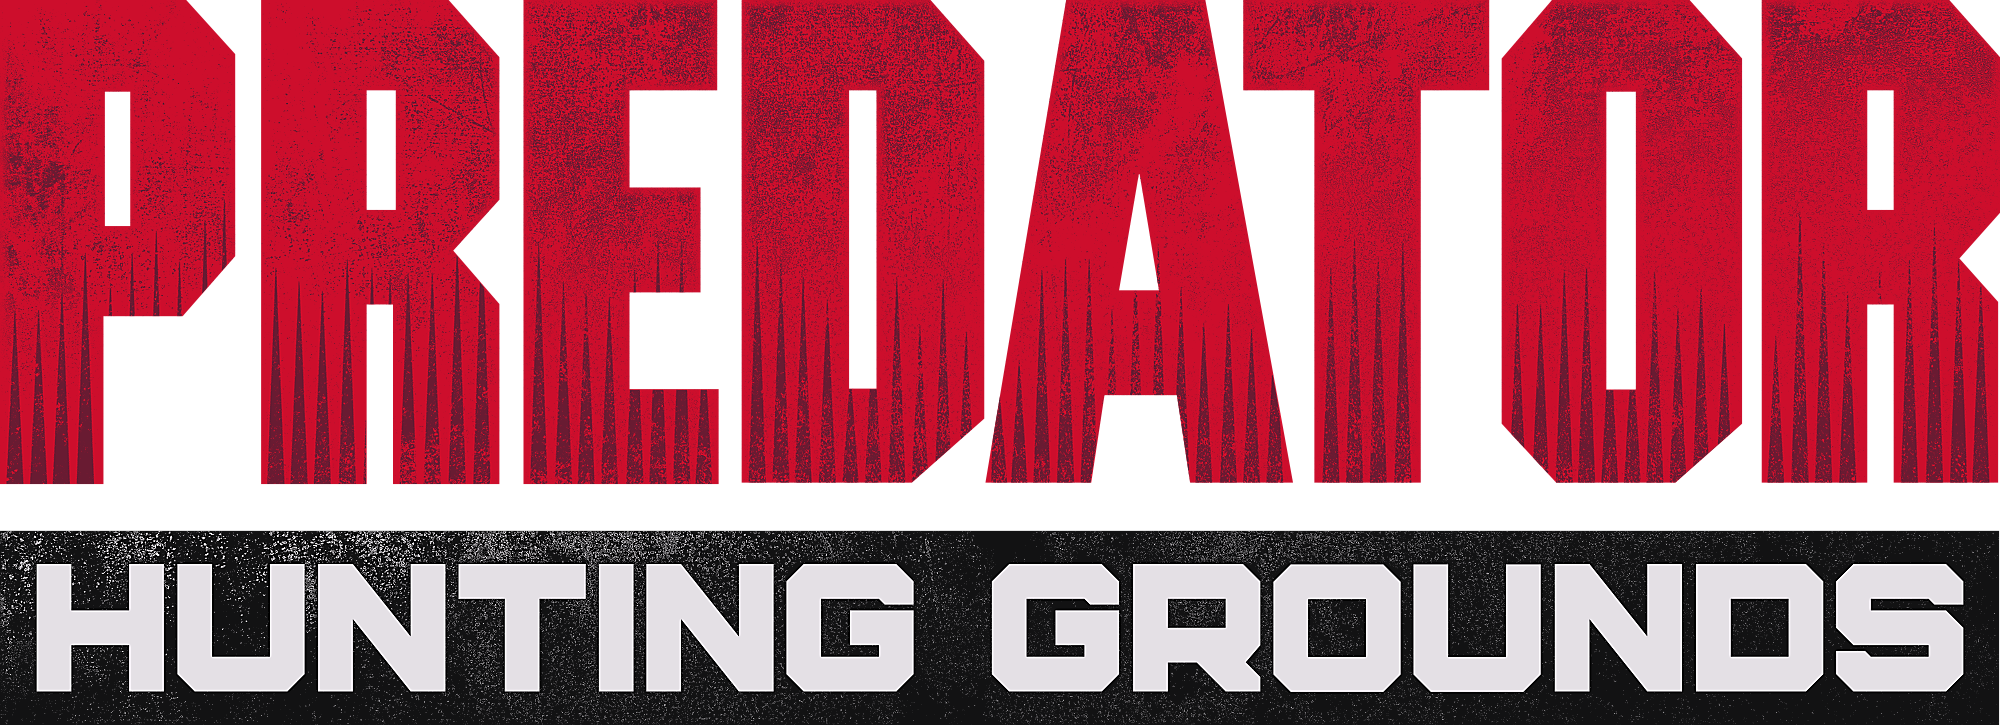 Predator Hunting Grounds logo